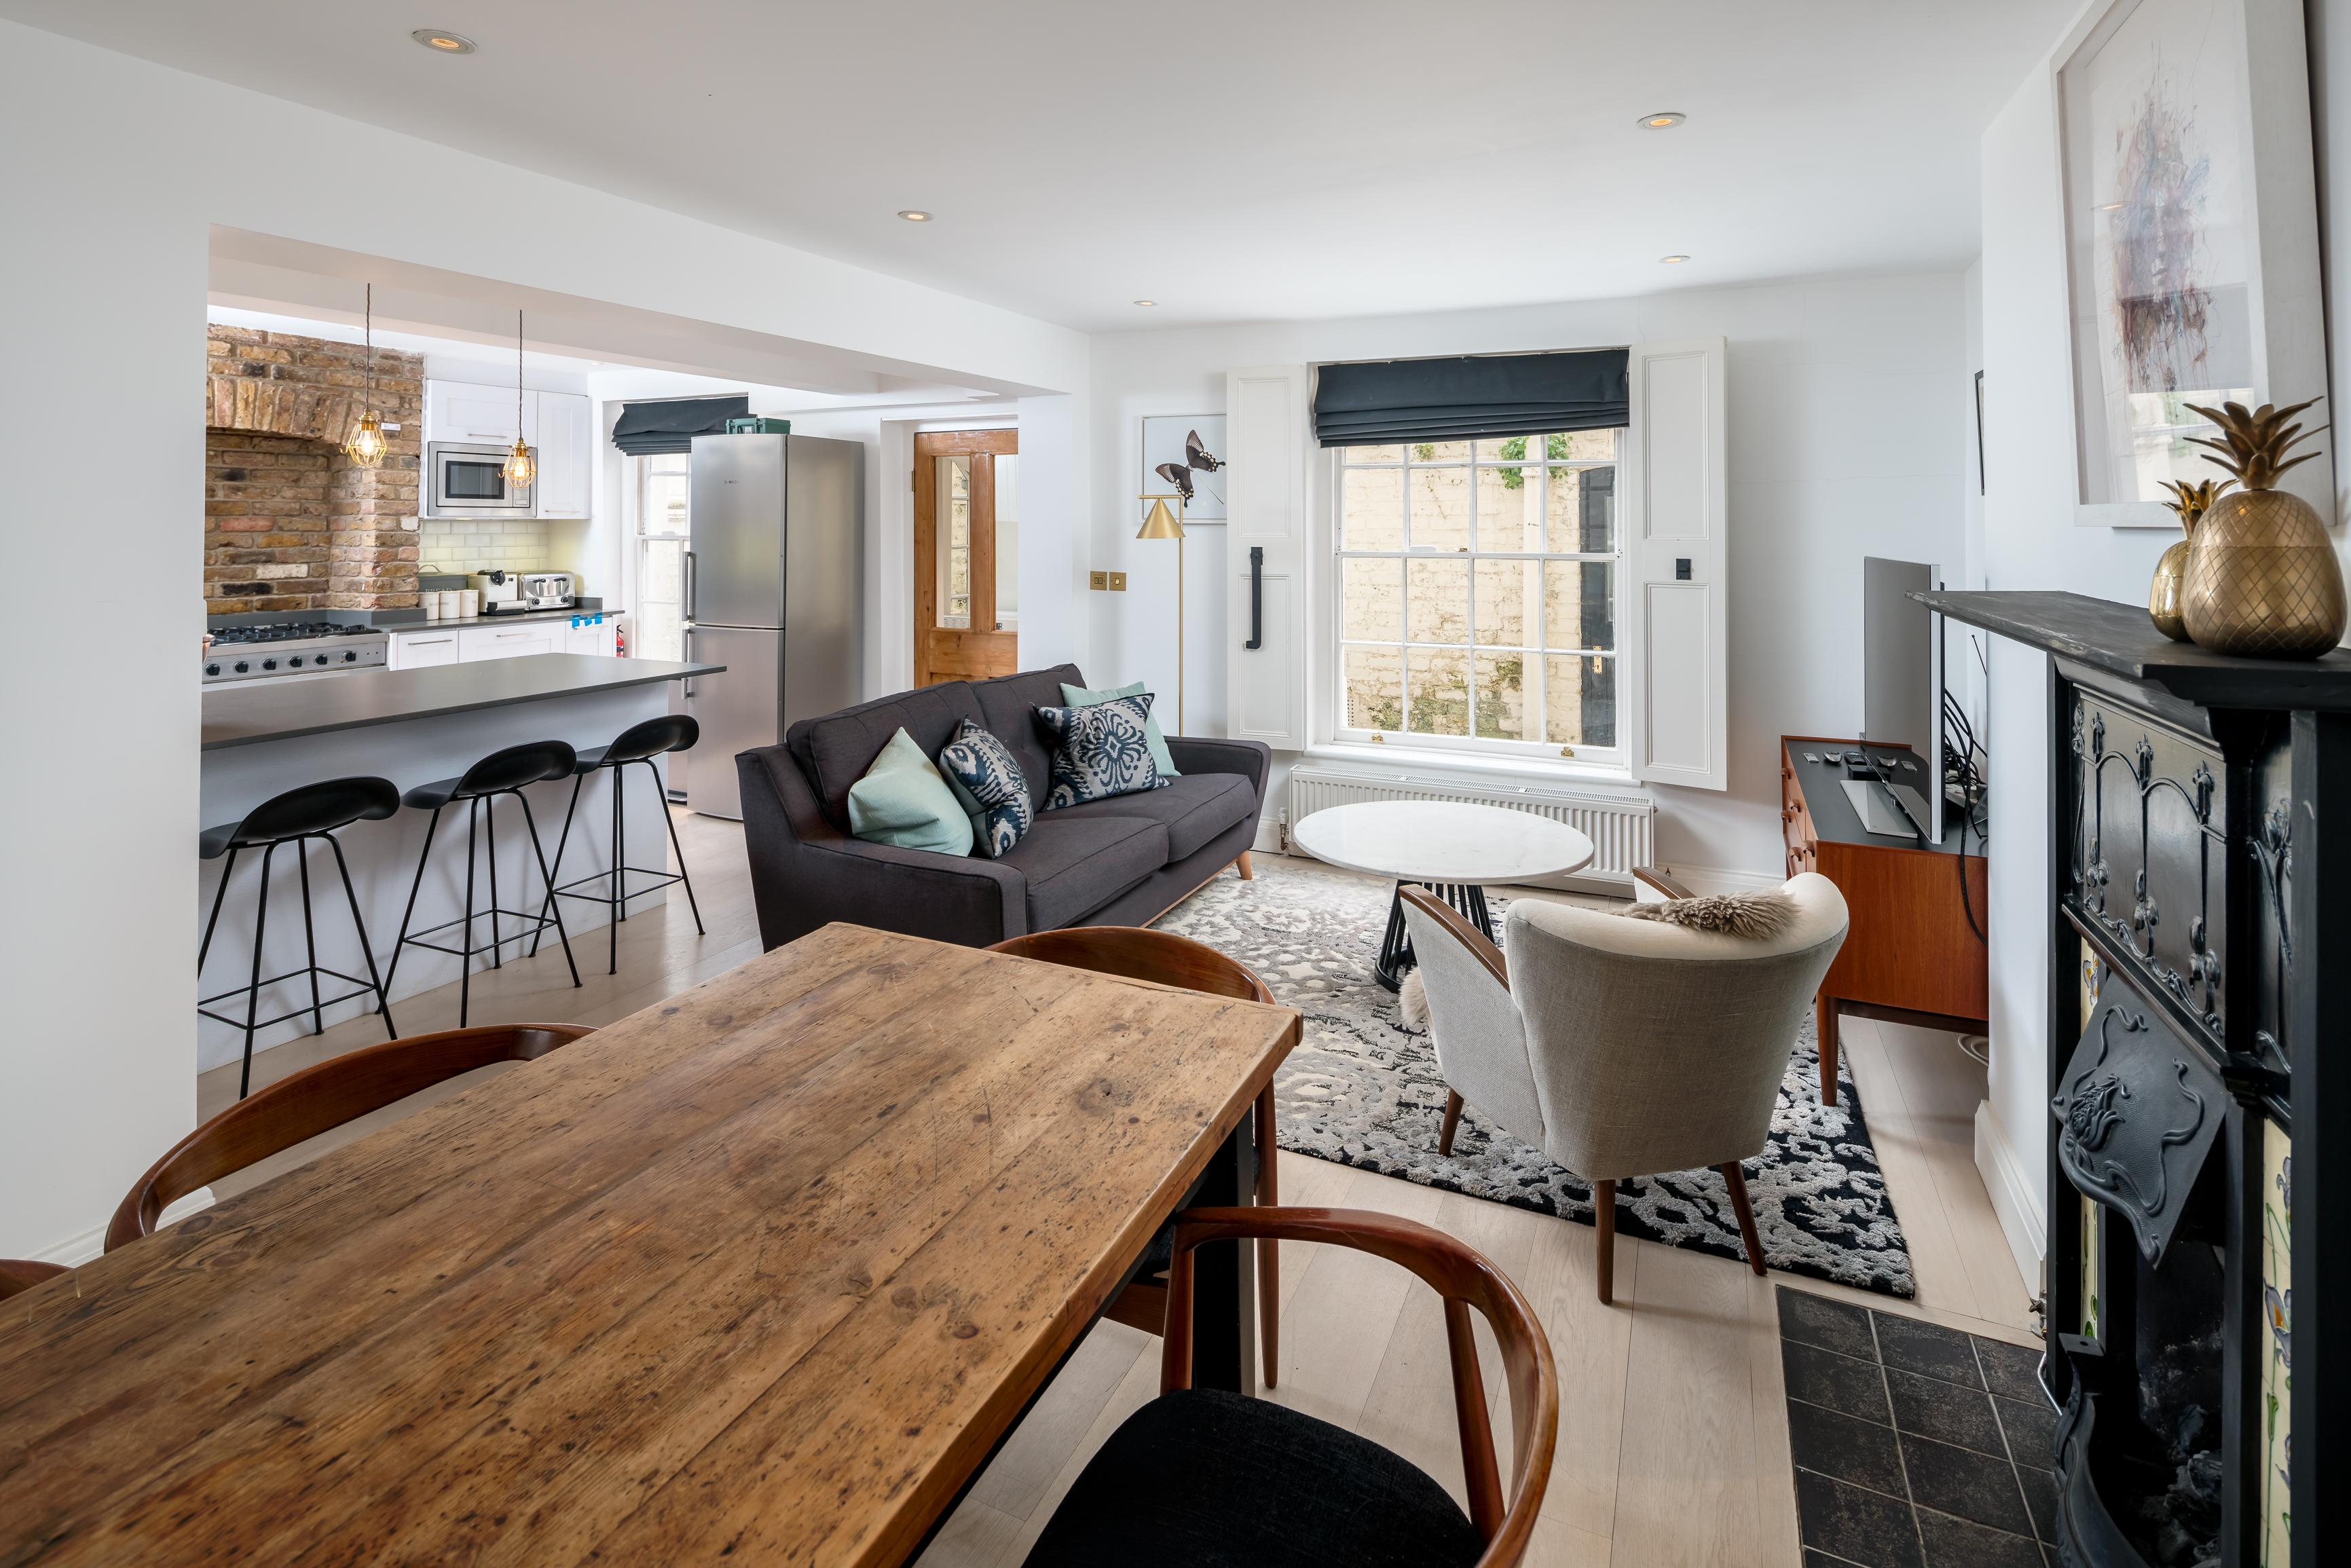 Property Image 1 - Marylebone 3BR home w/ patio by Baker street